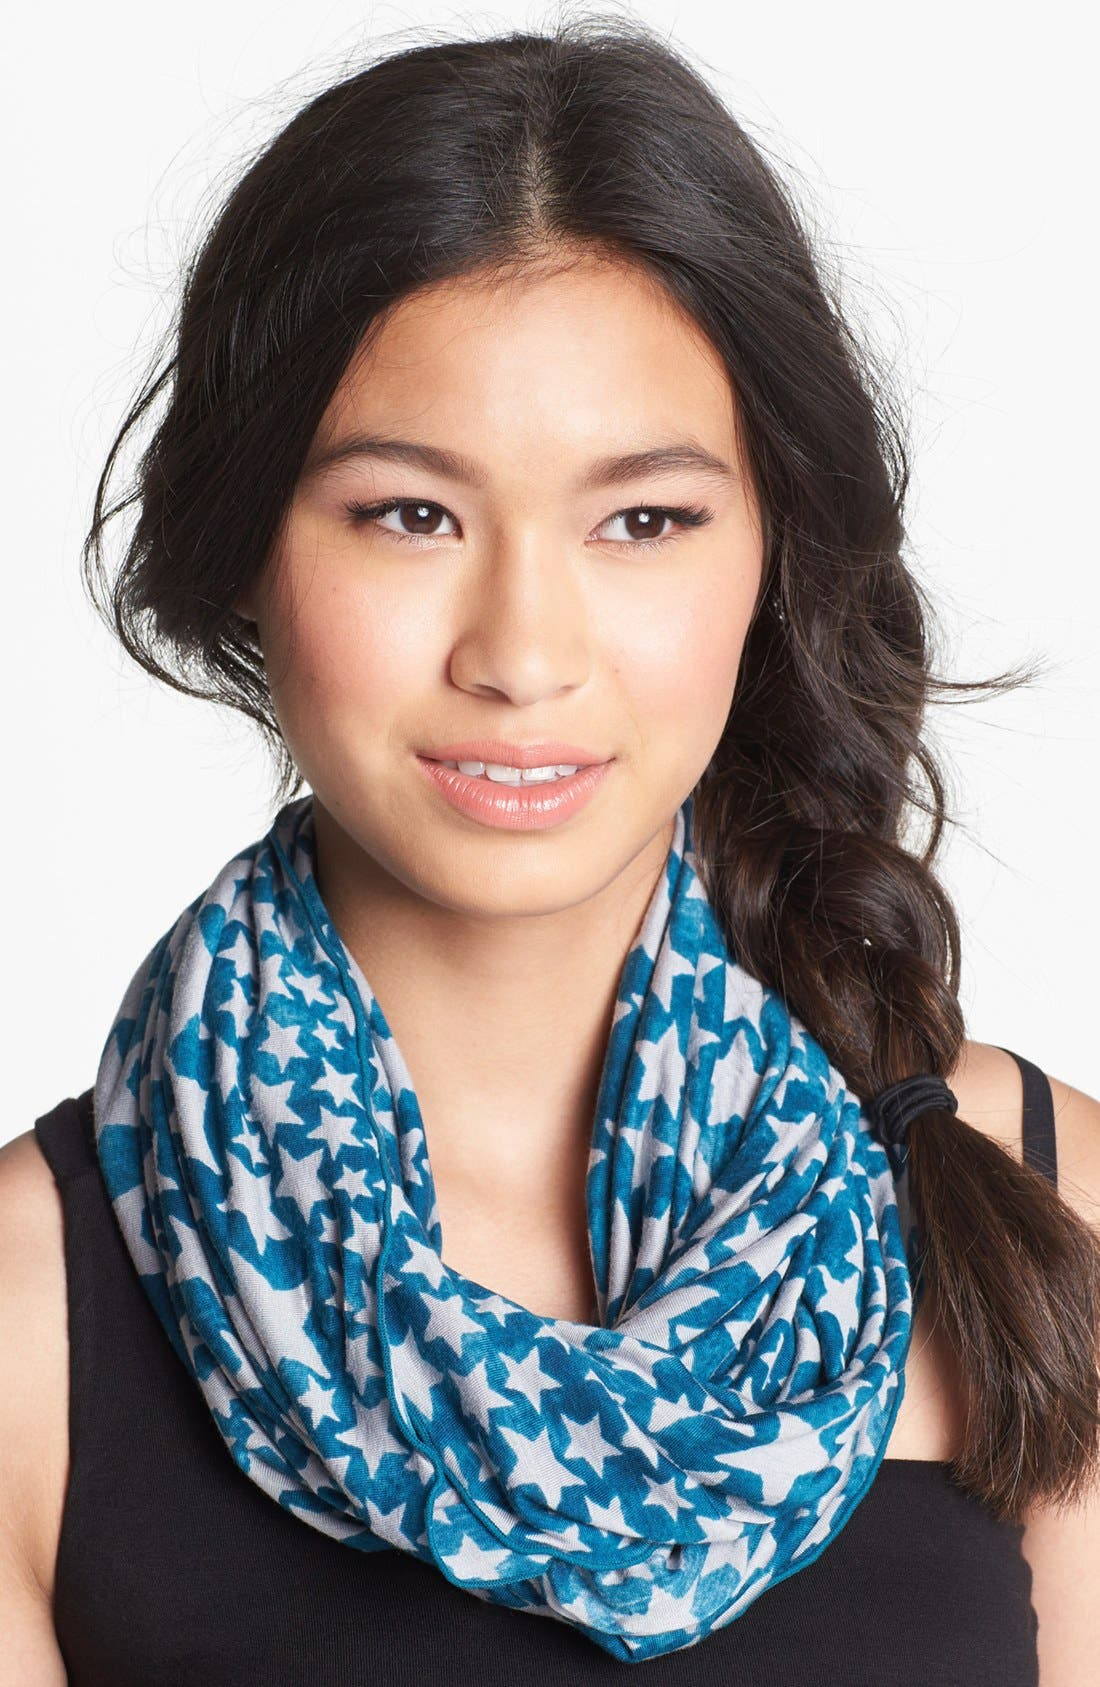 Alternate Image 1 Selected - Unit-Y 'Sassy' Infinity Scarf